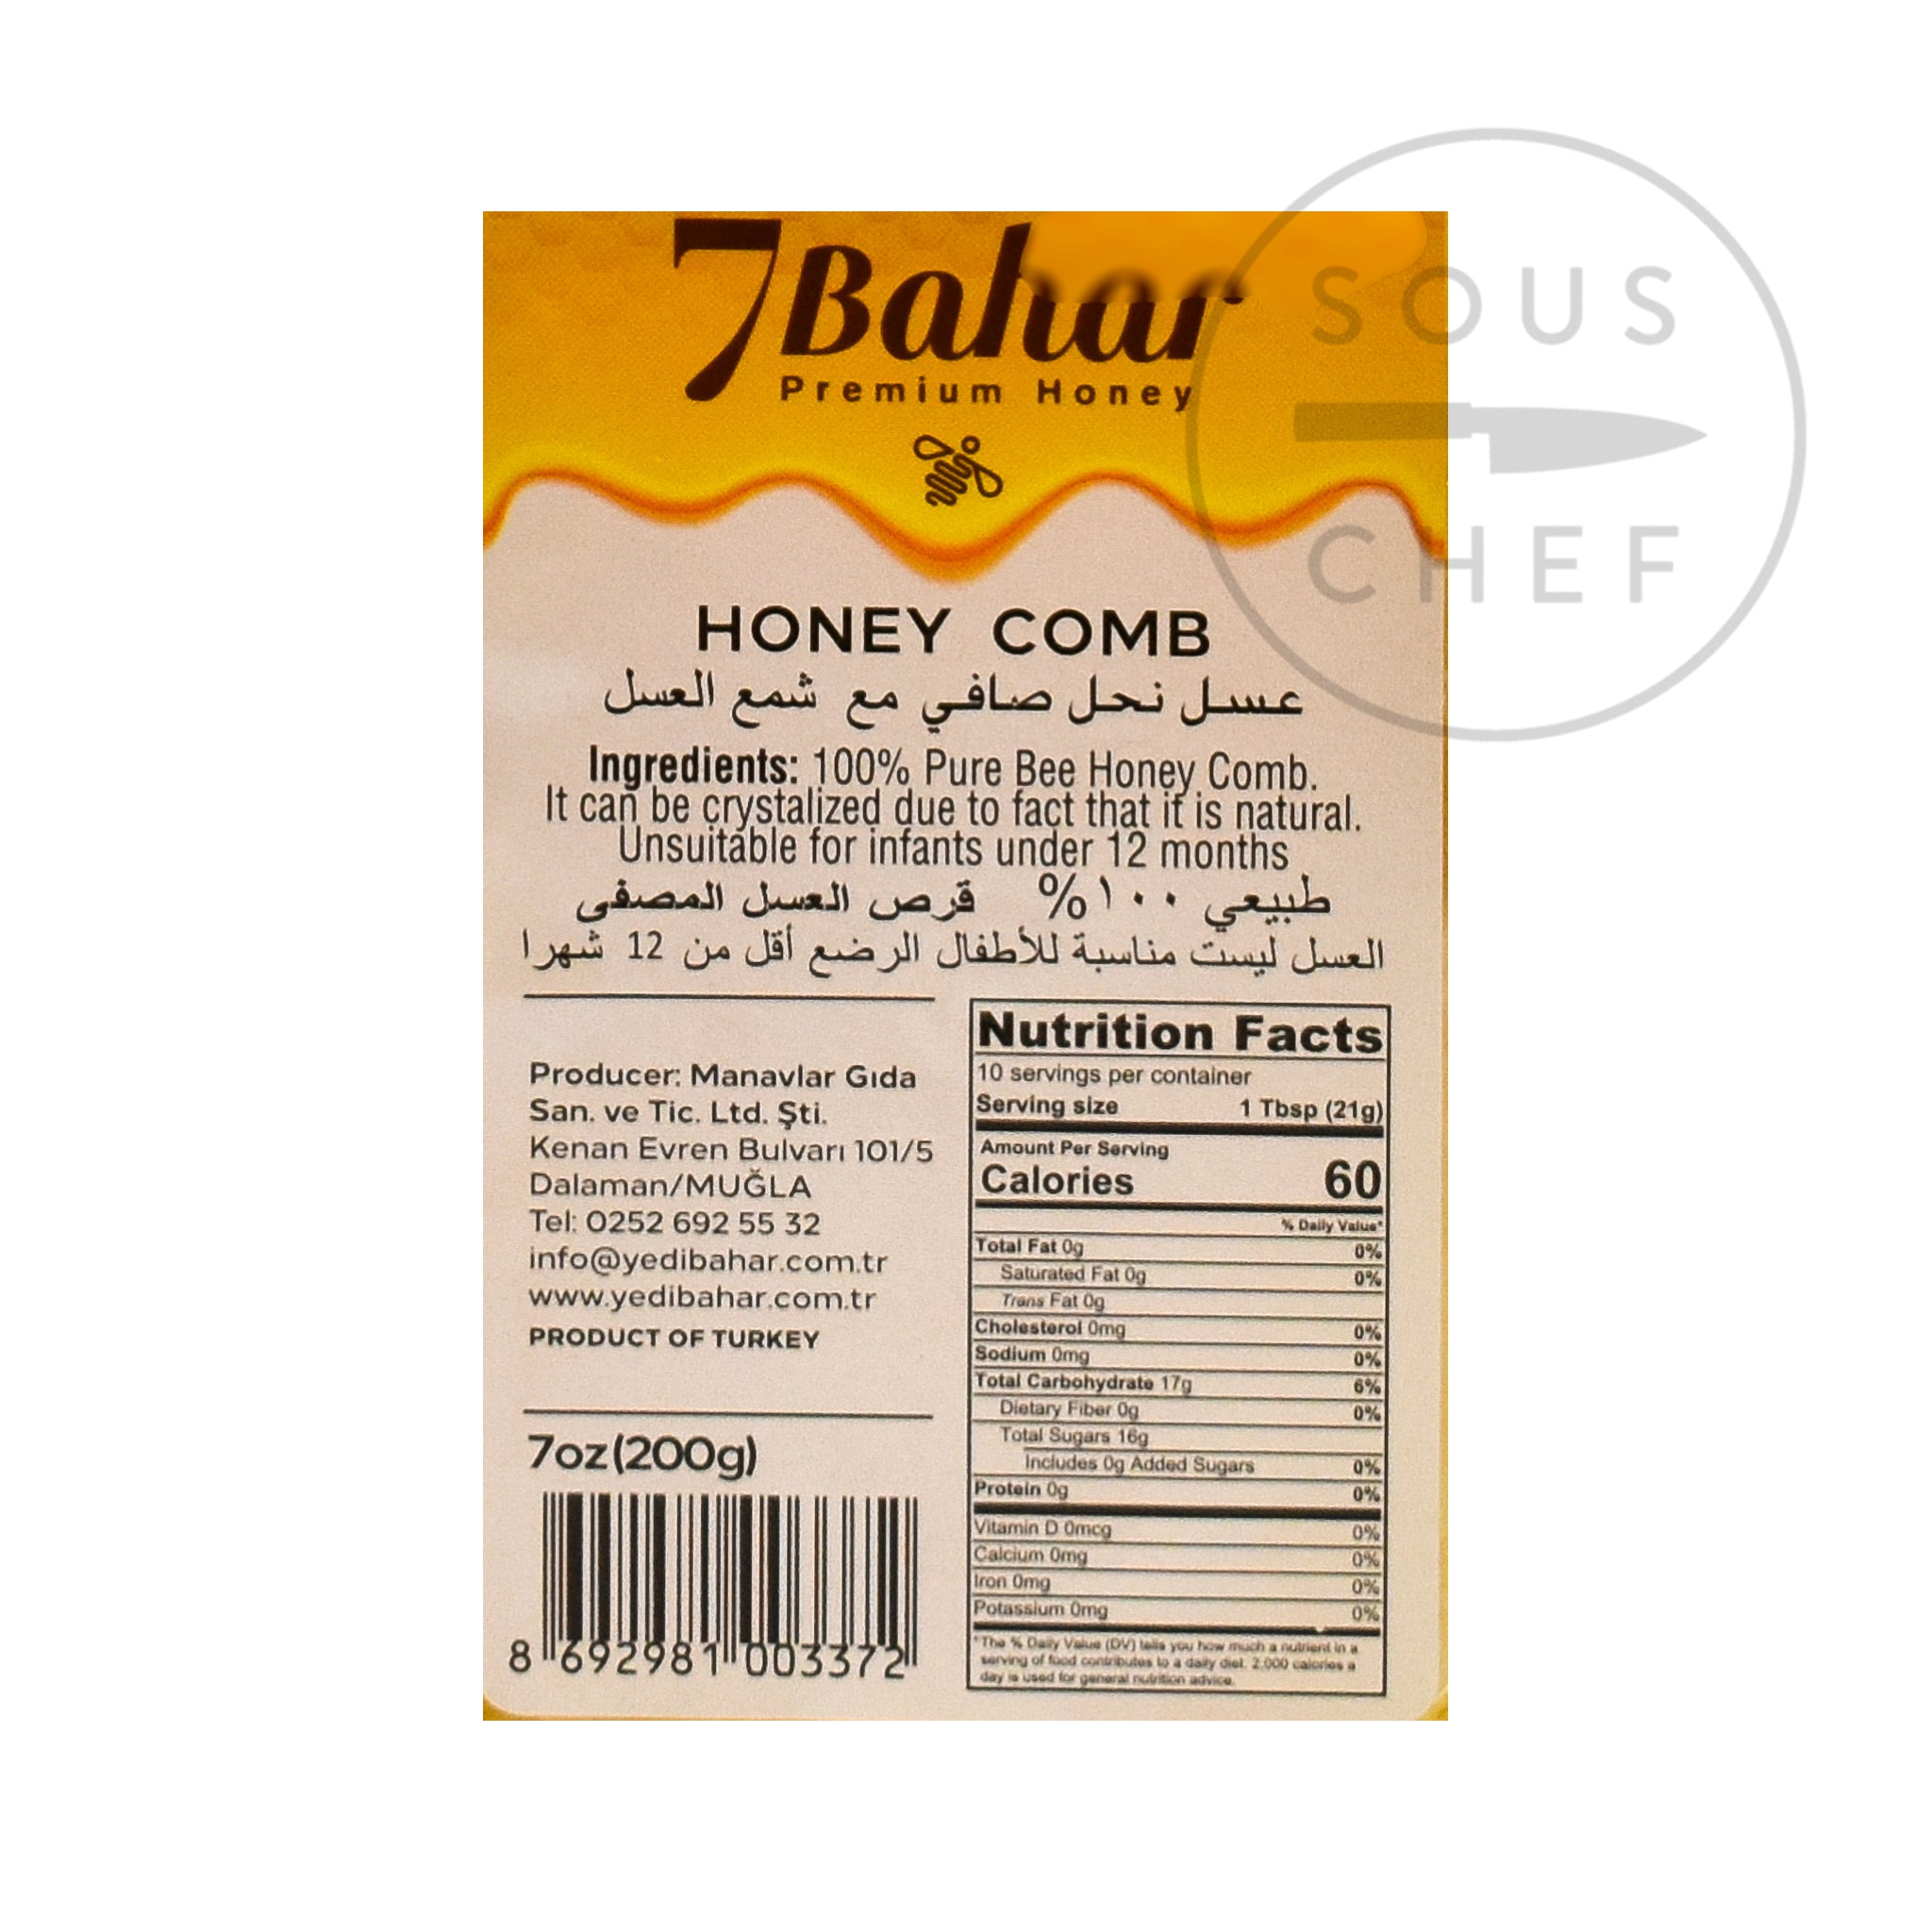 Real Honeycomb 200g ingredients nutritional information